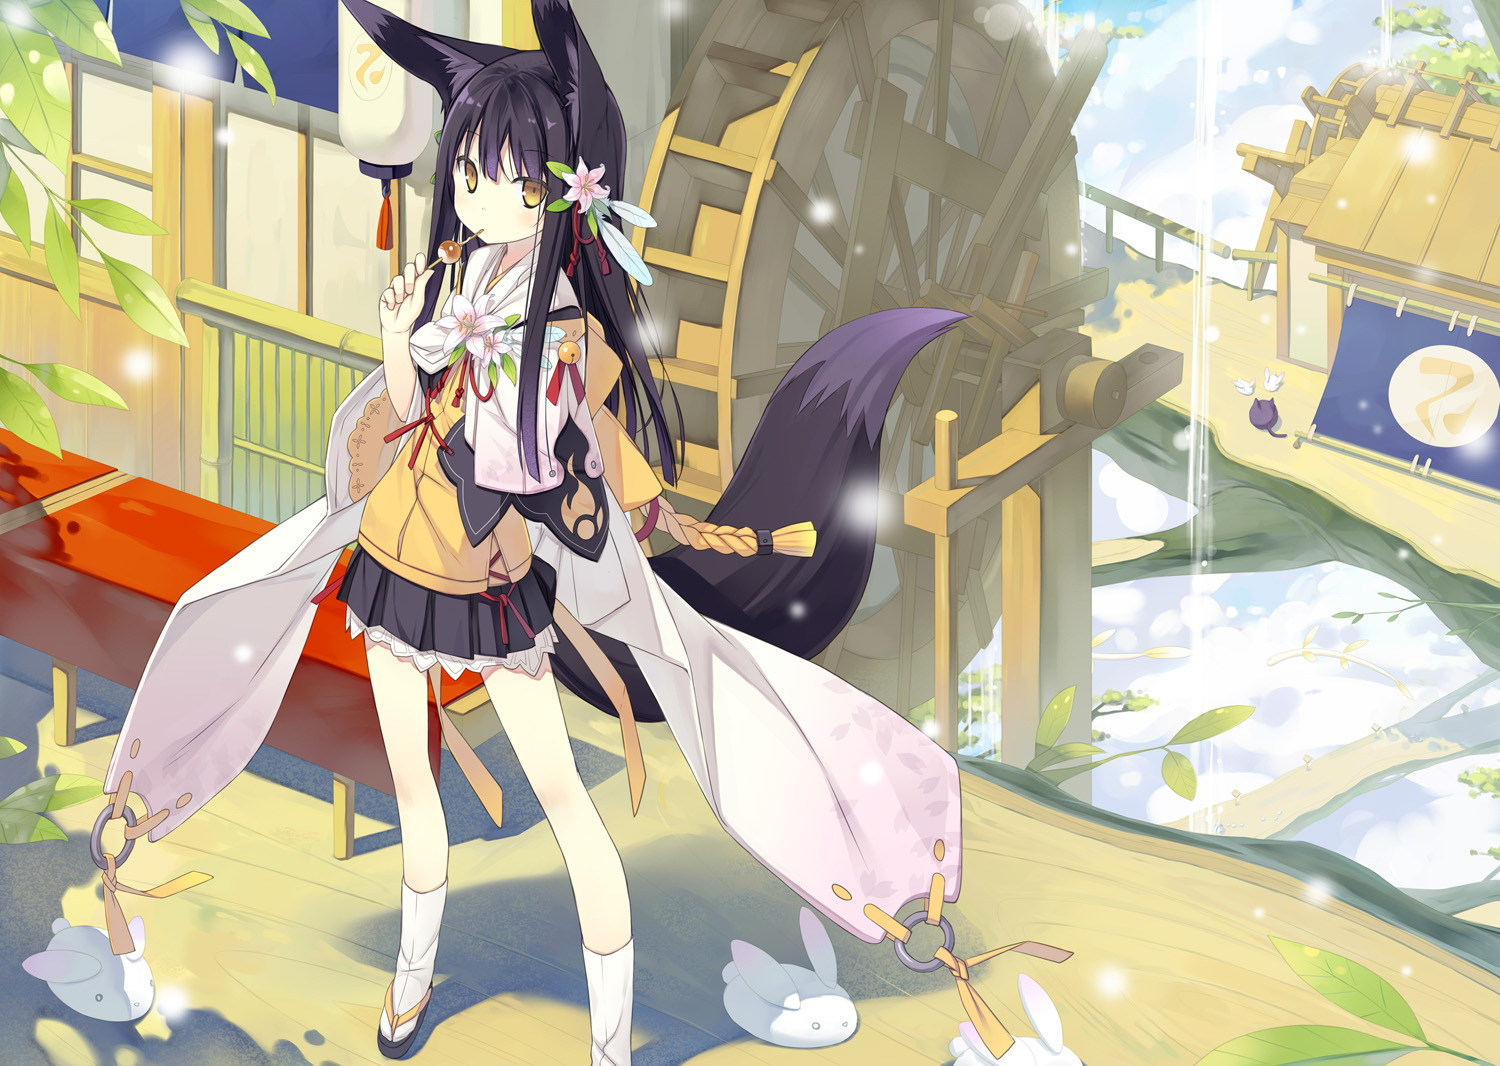 Photo kitsune anime